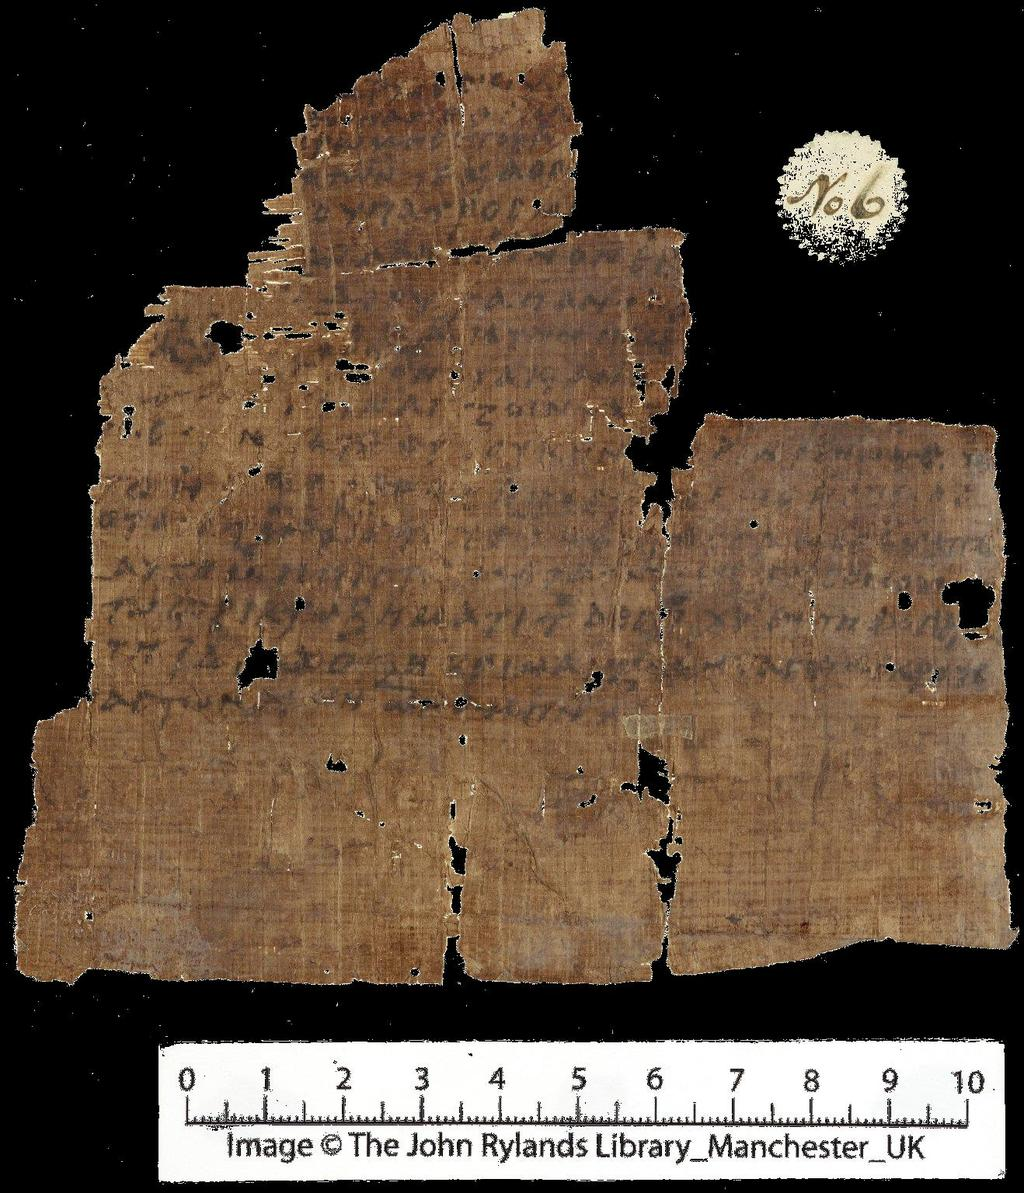 Oldest extant manuscript